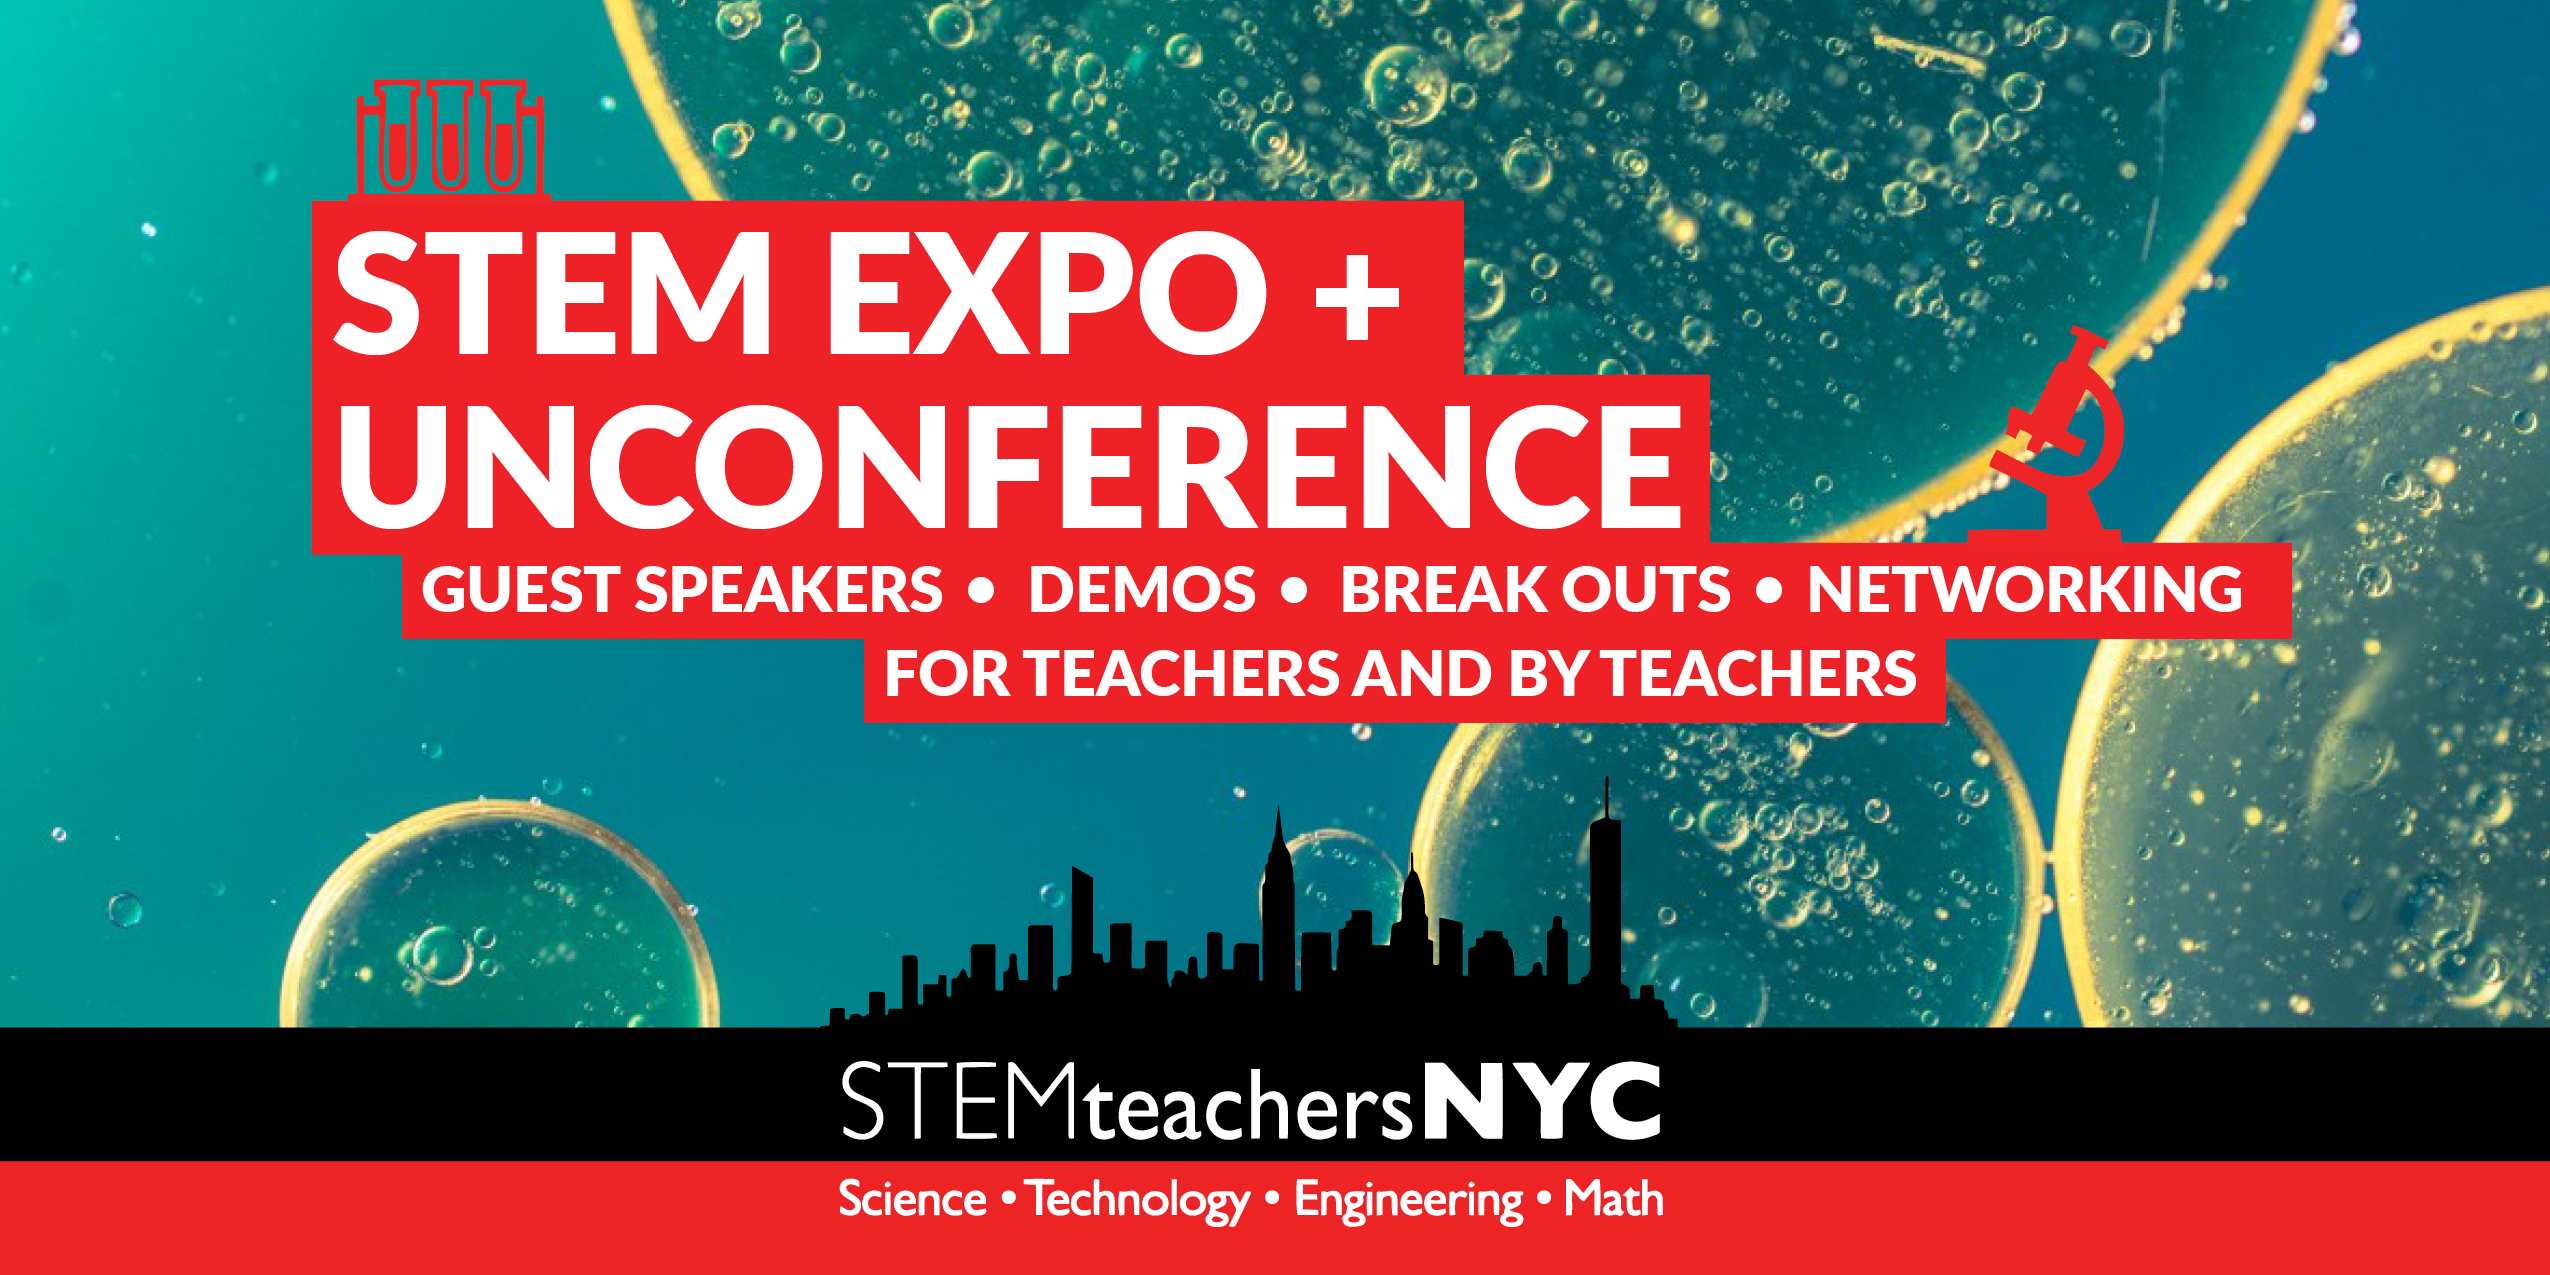 STEMteachersNYC Annual Meeting and Expo